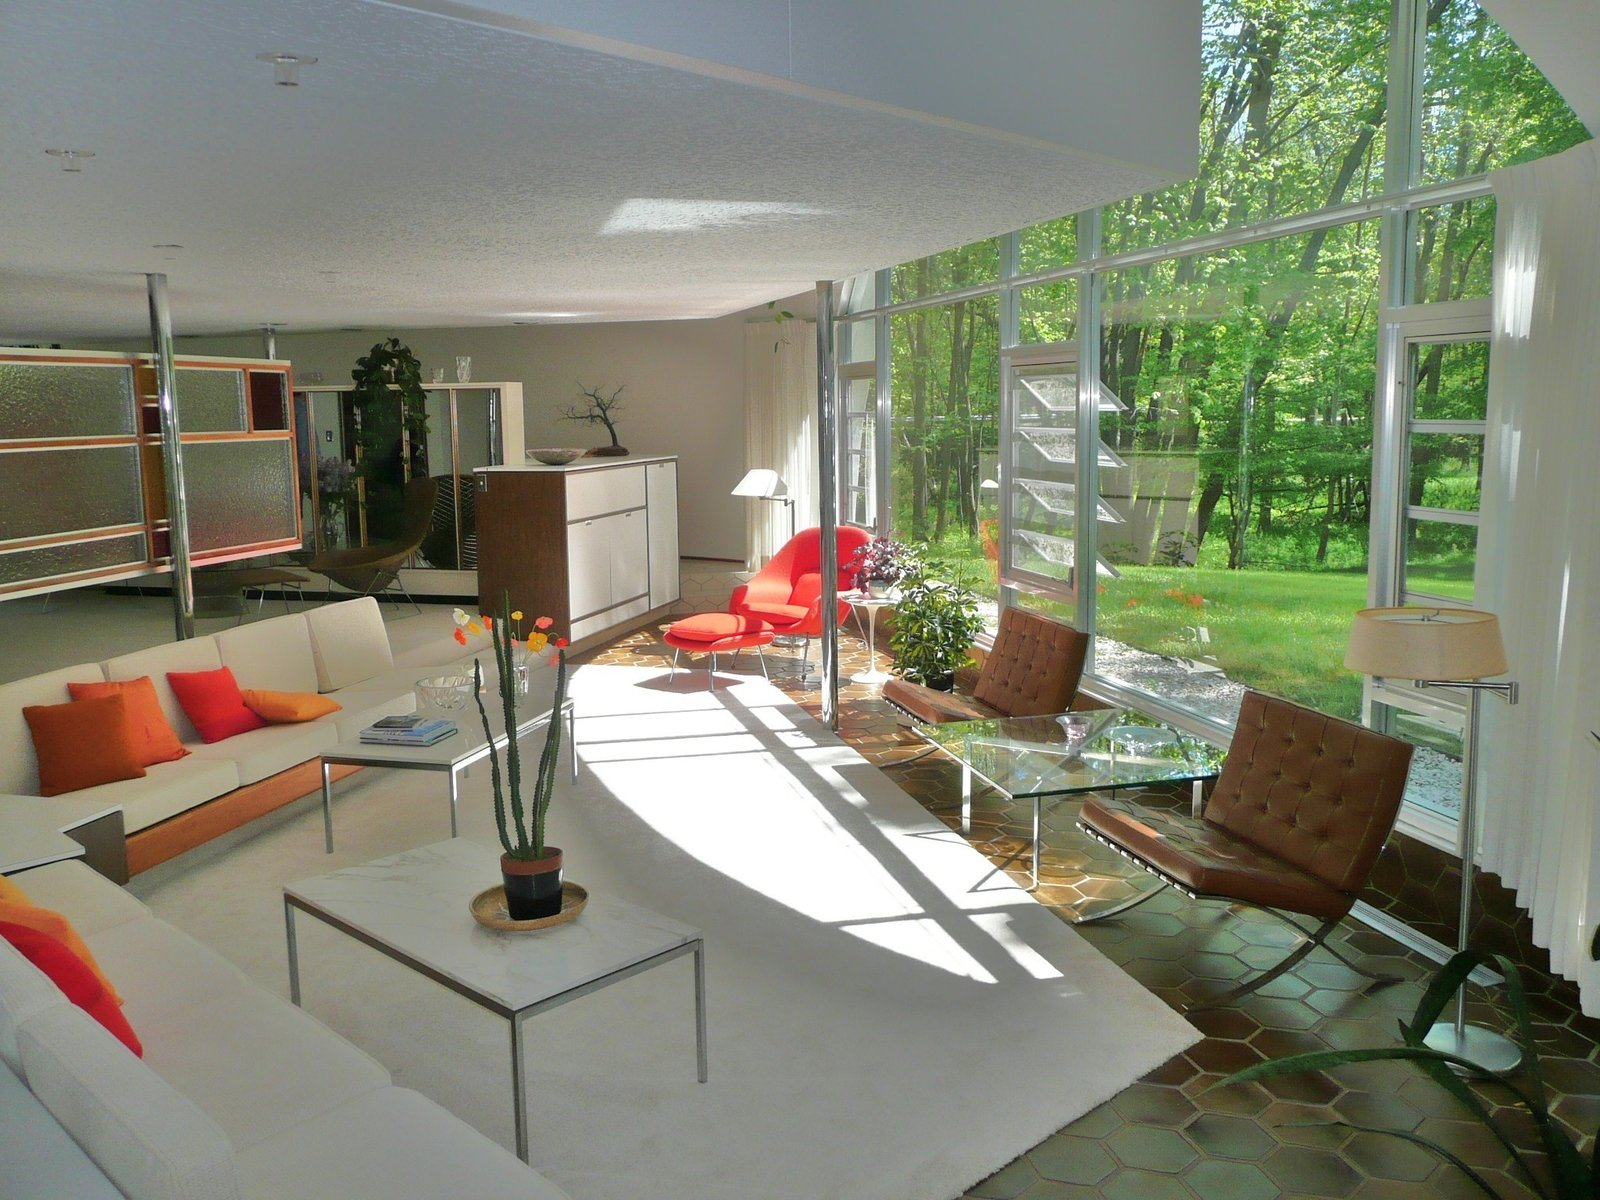 Robert Schwartz's Schwartz House has a quintessentially midcentury modern interior complete with sunken living room, open floor plan and iconic midcentury furniture.  Photo 5 of 5 in Defining an Architectural Canon From the Ground Up